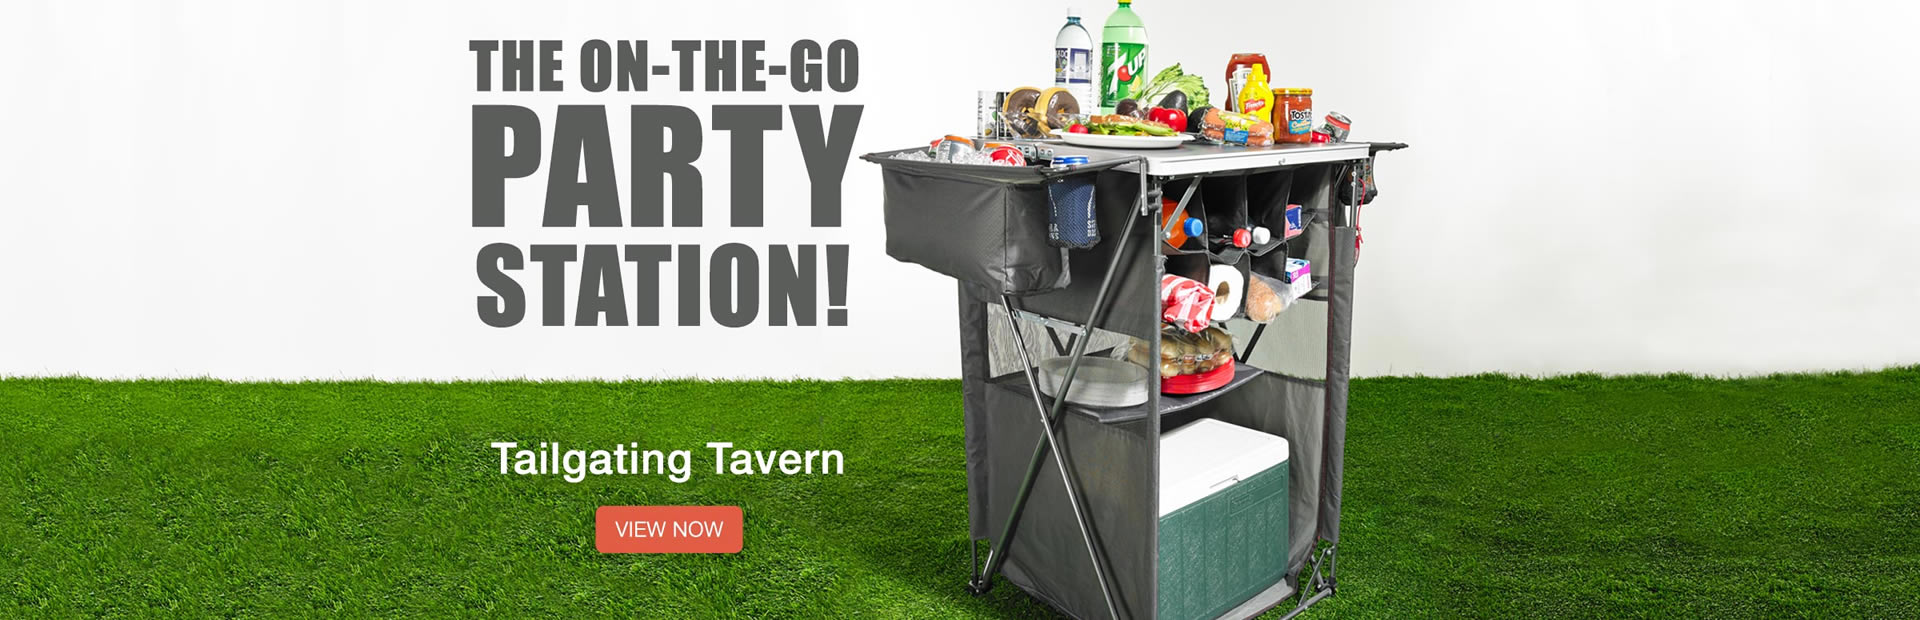 Tailgating Tavern: The On-The-Go Party Station!